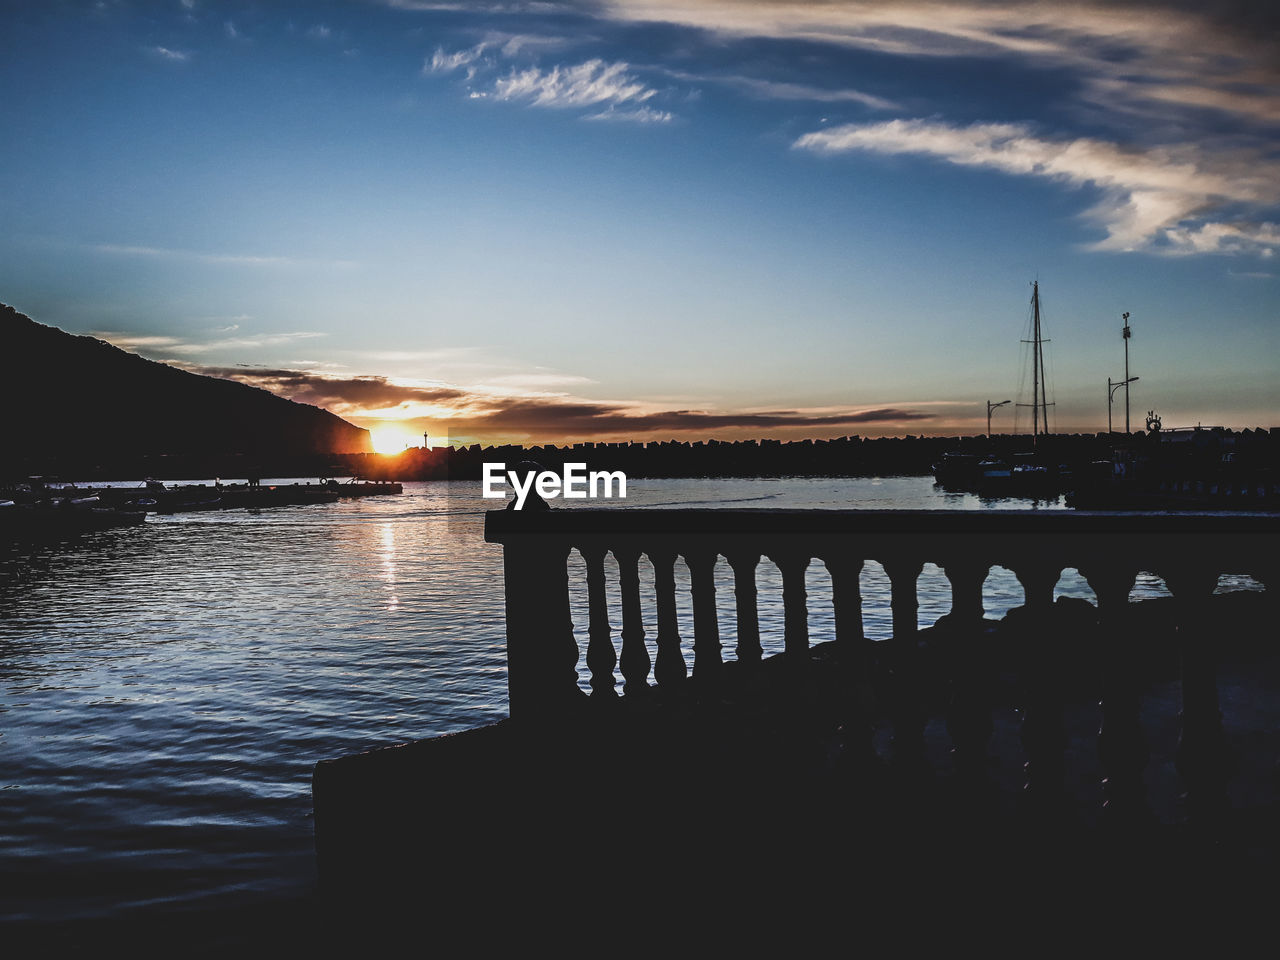 sky, sunset, water, cloud - sky, beauty in nature, scenics - nature, nature, silhouette, tranquil scene, tranquility, lake, architecture, built structure, orange color, no people, reflection, railing, outdoors, idyllic, wooden post